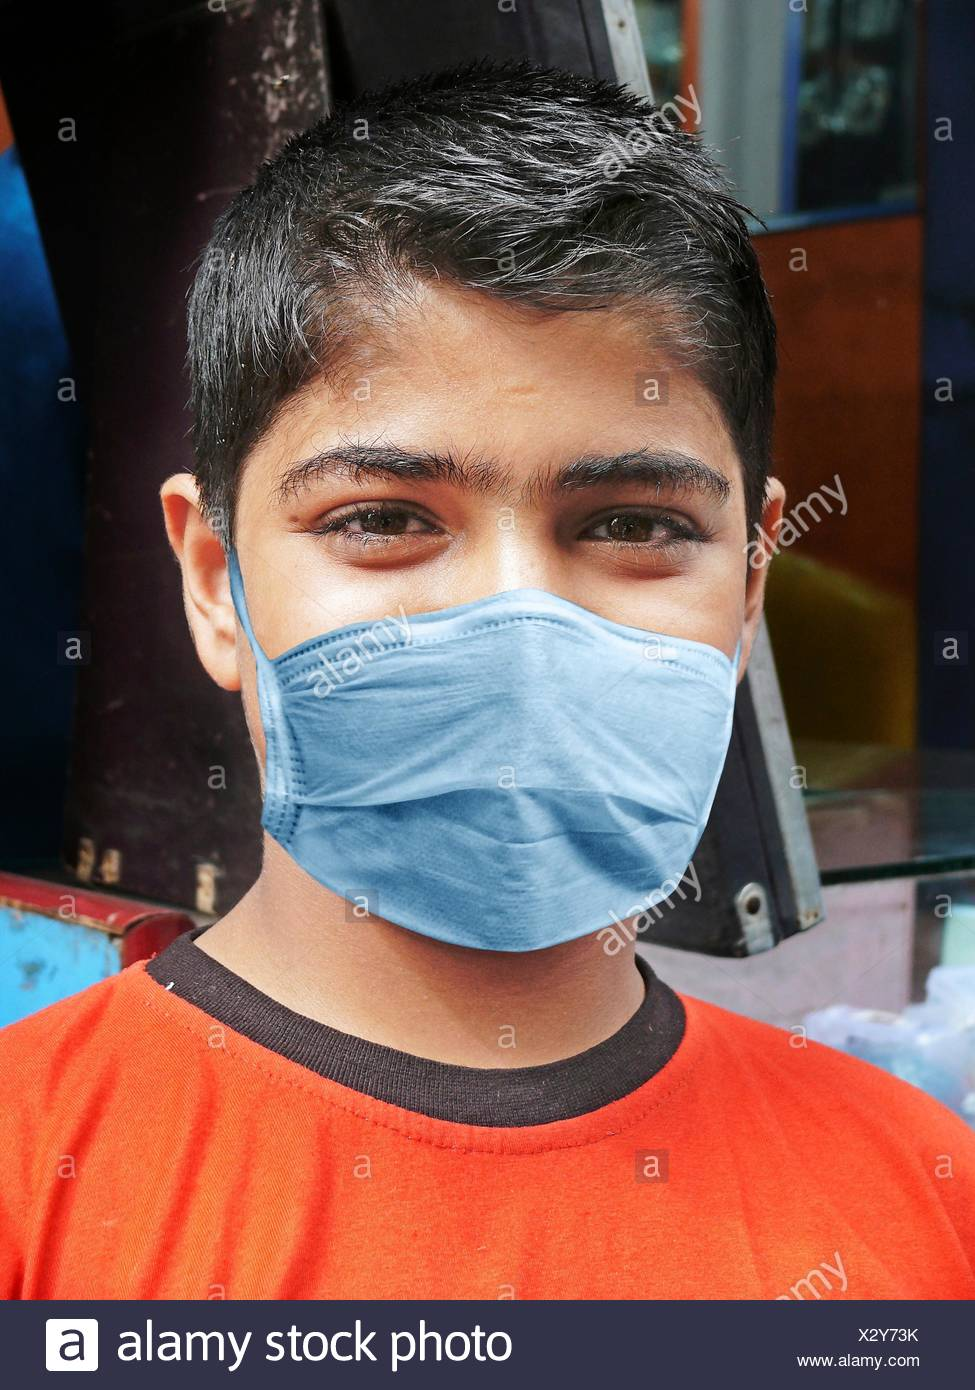 Young boy, Precaution mask for Swine Flu, H1N1 - Stock Image